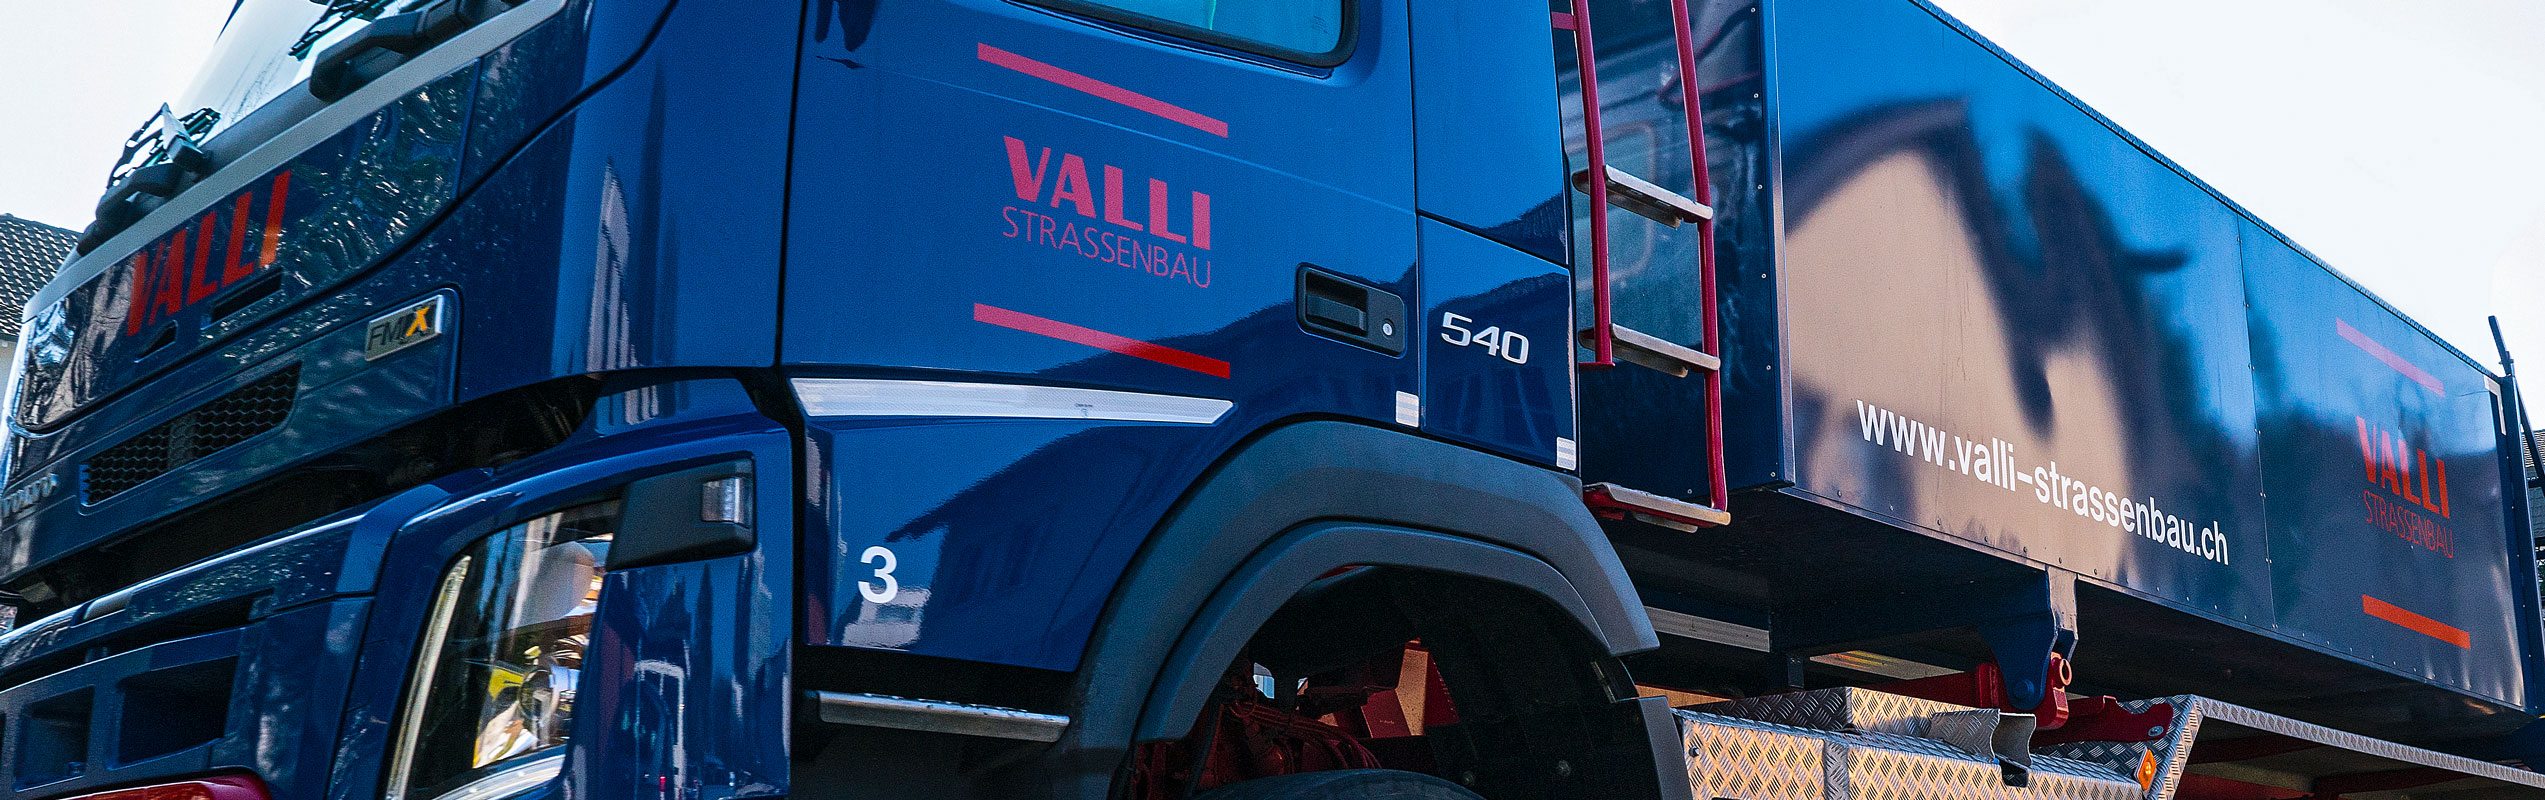 valli-slider-lastwagen-2